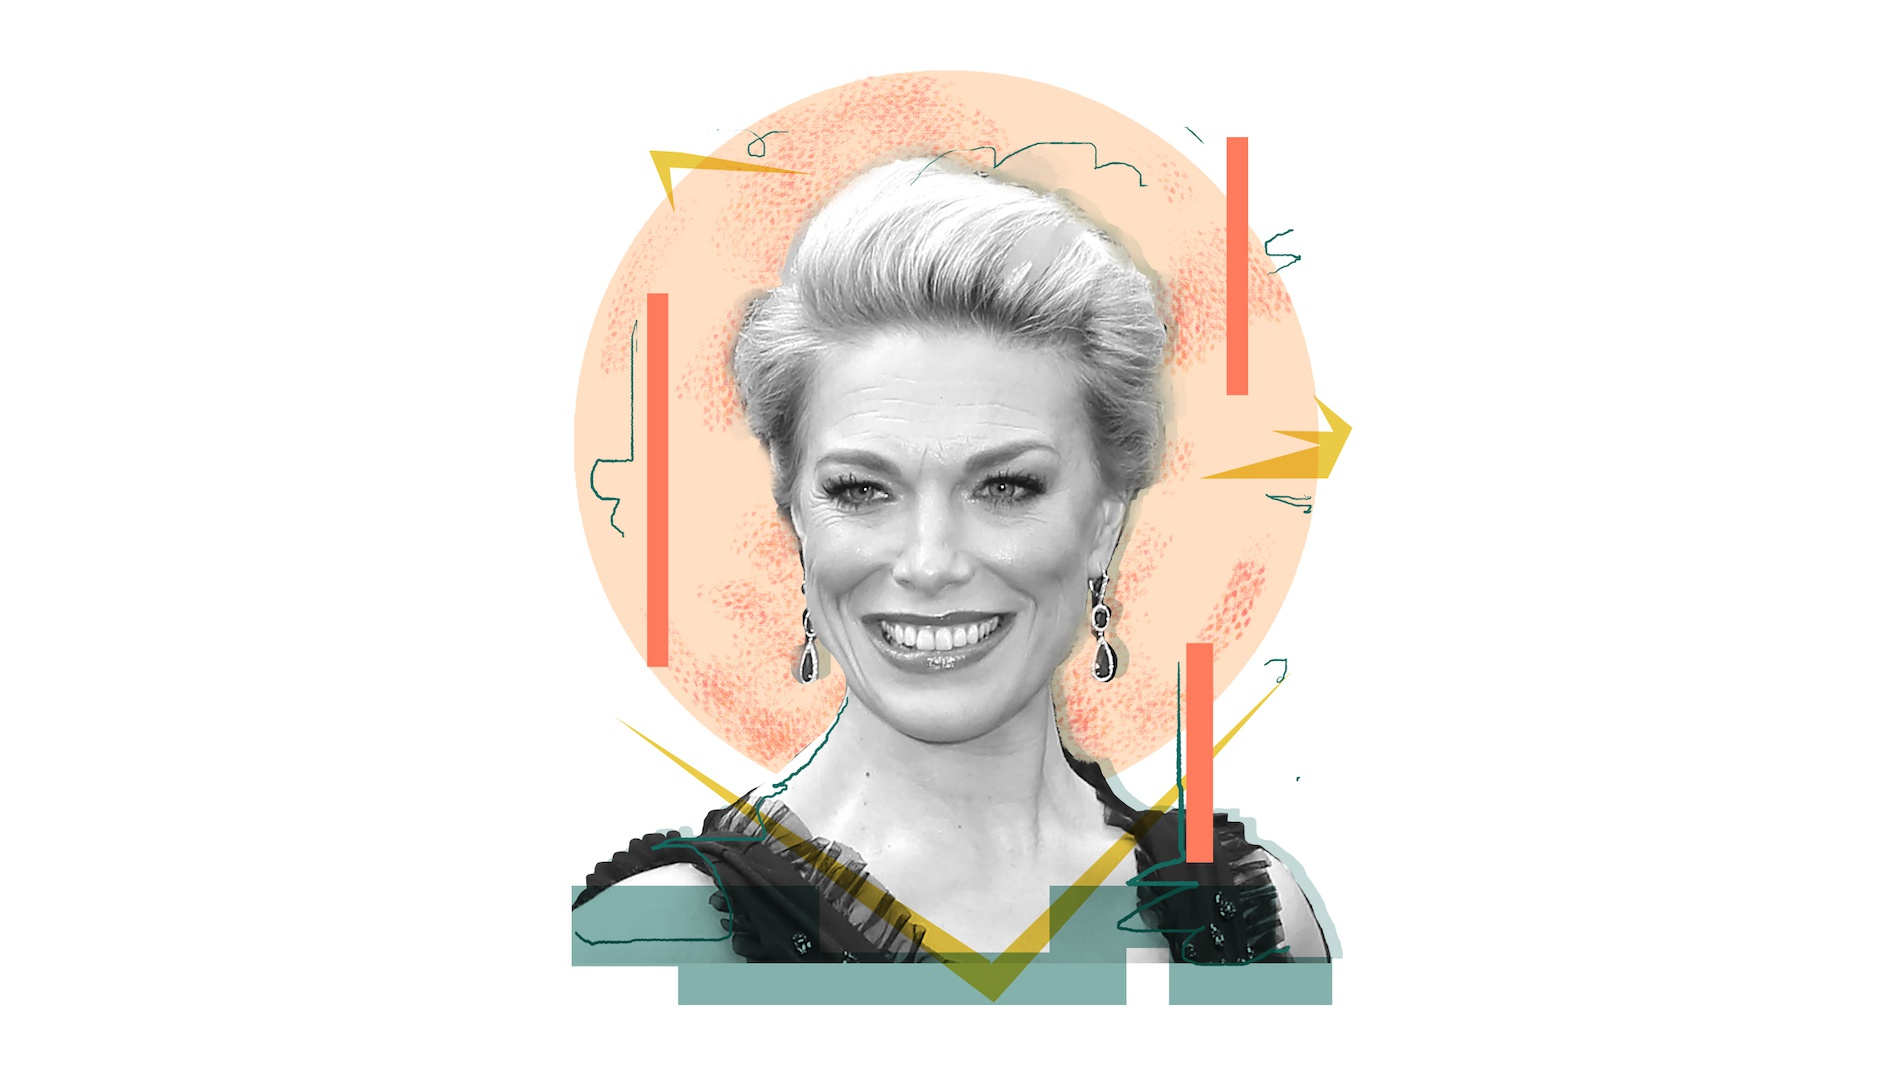 Hannah Waddingham Booked 'Ted Lasso' Thanks to This Self-Tape Audition Trick